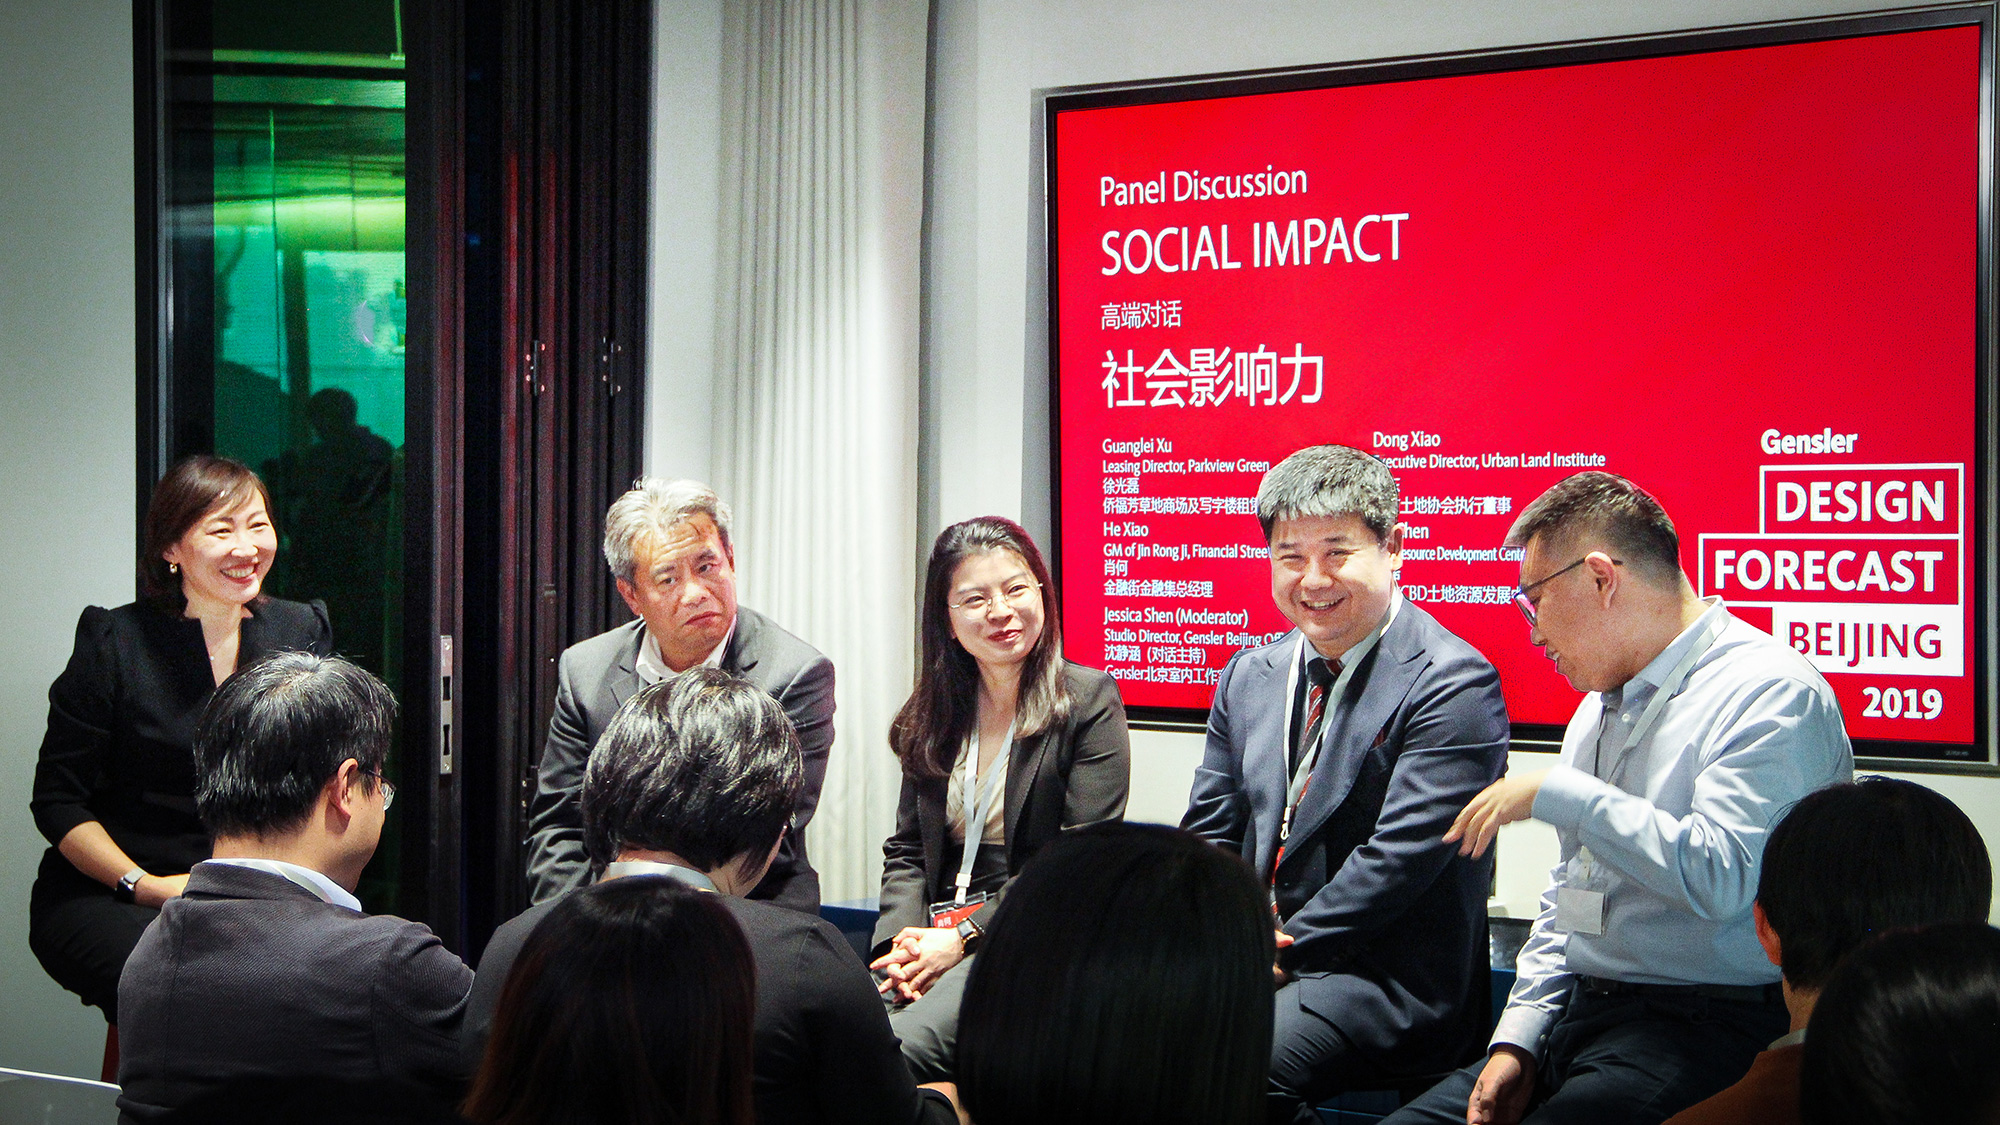 Panelists discuss the topic of social impact